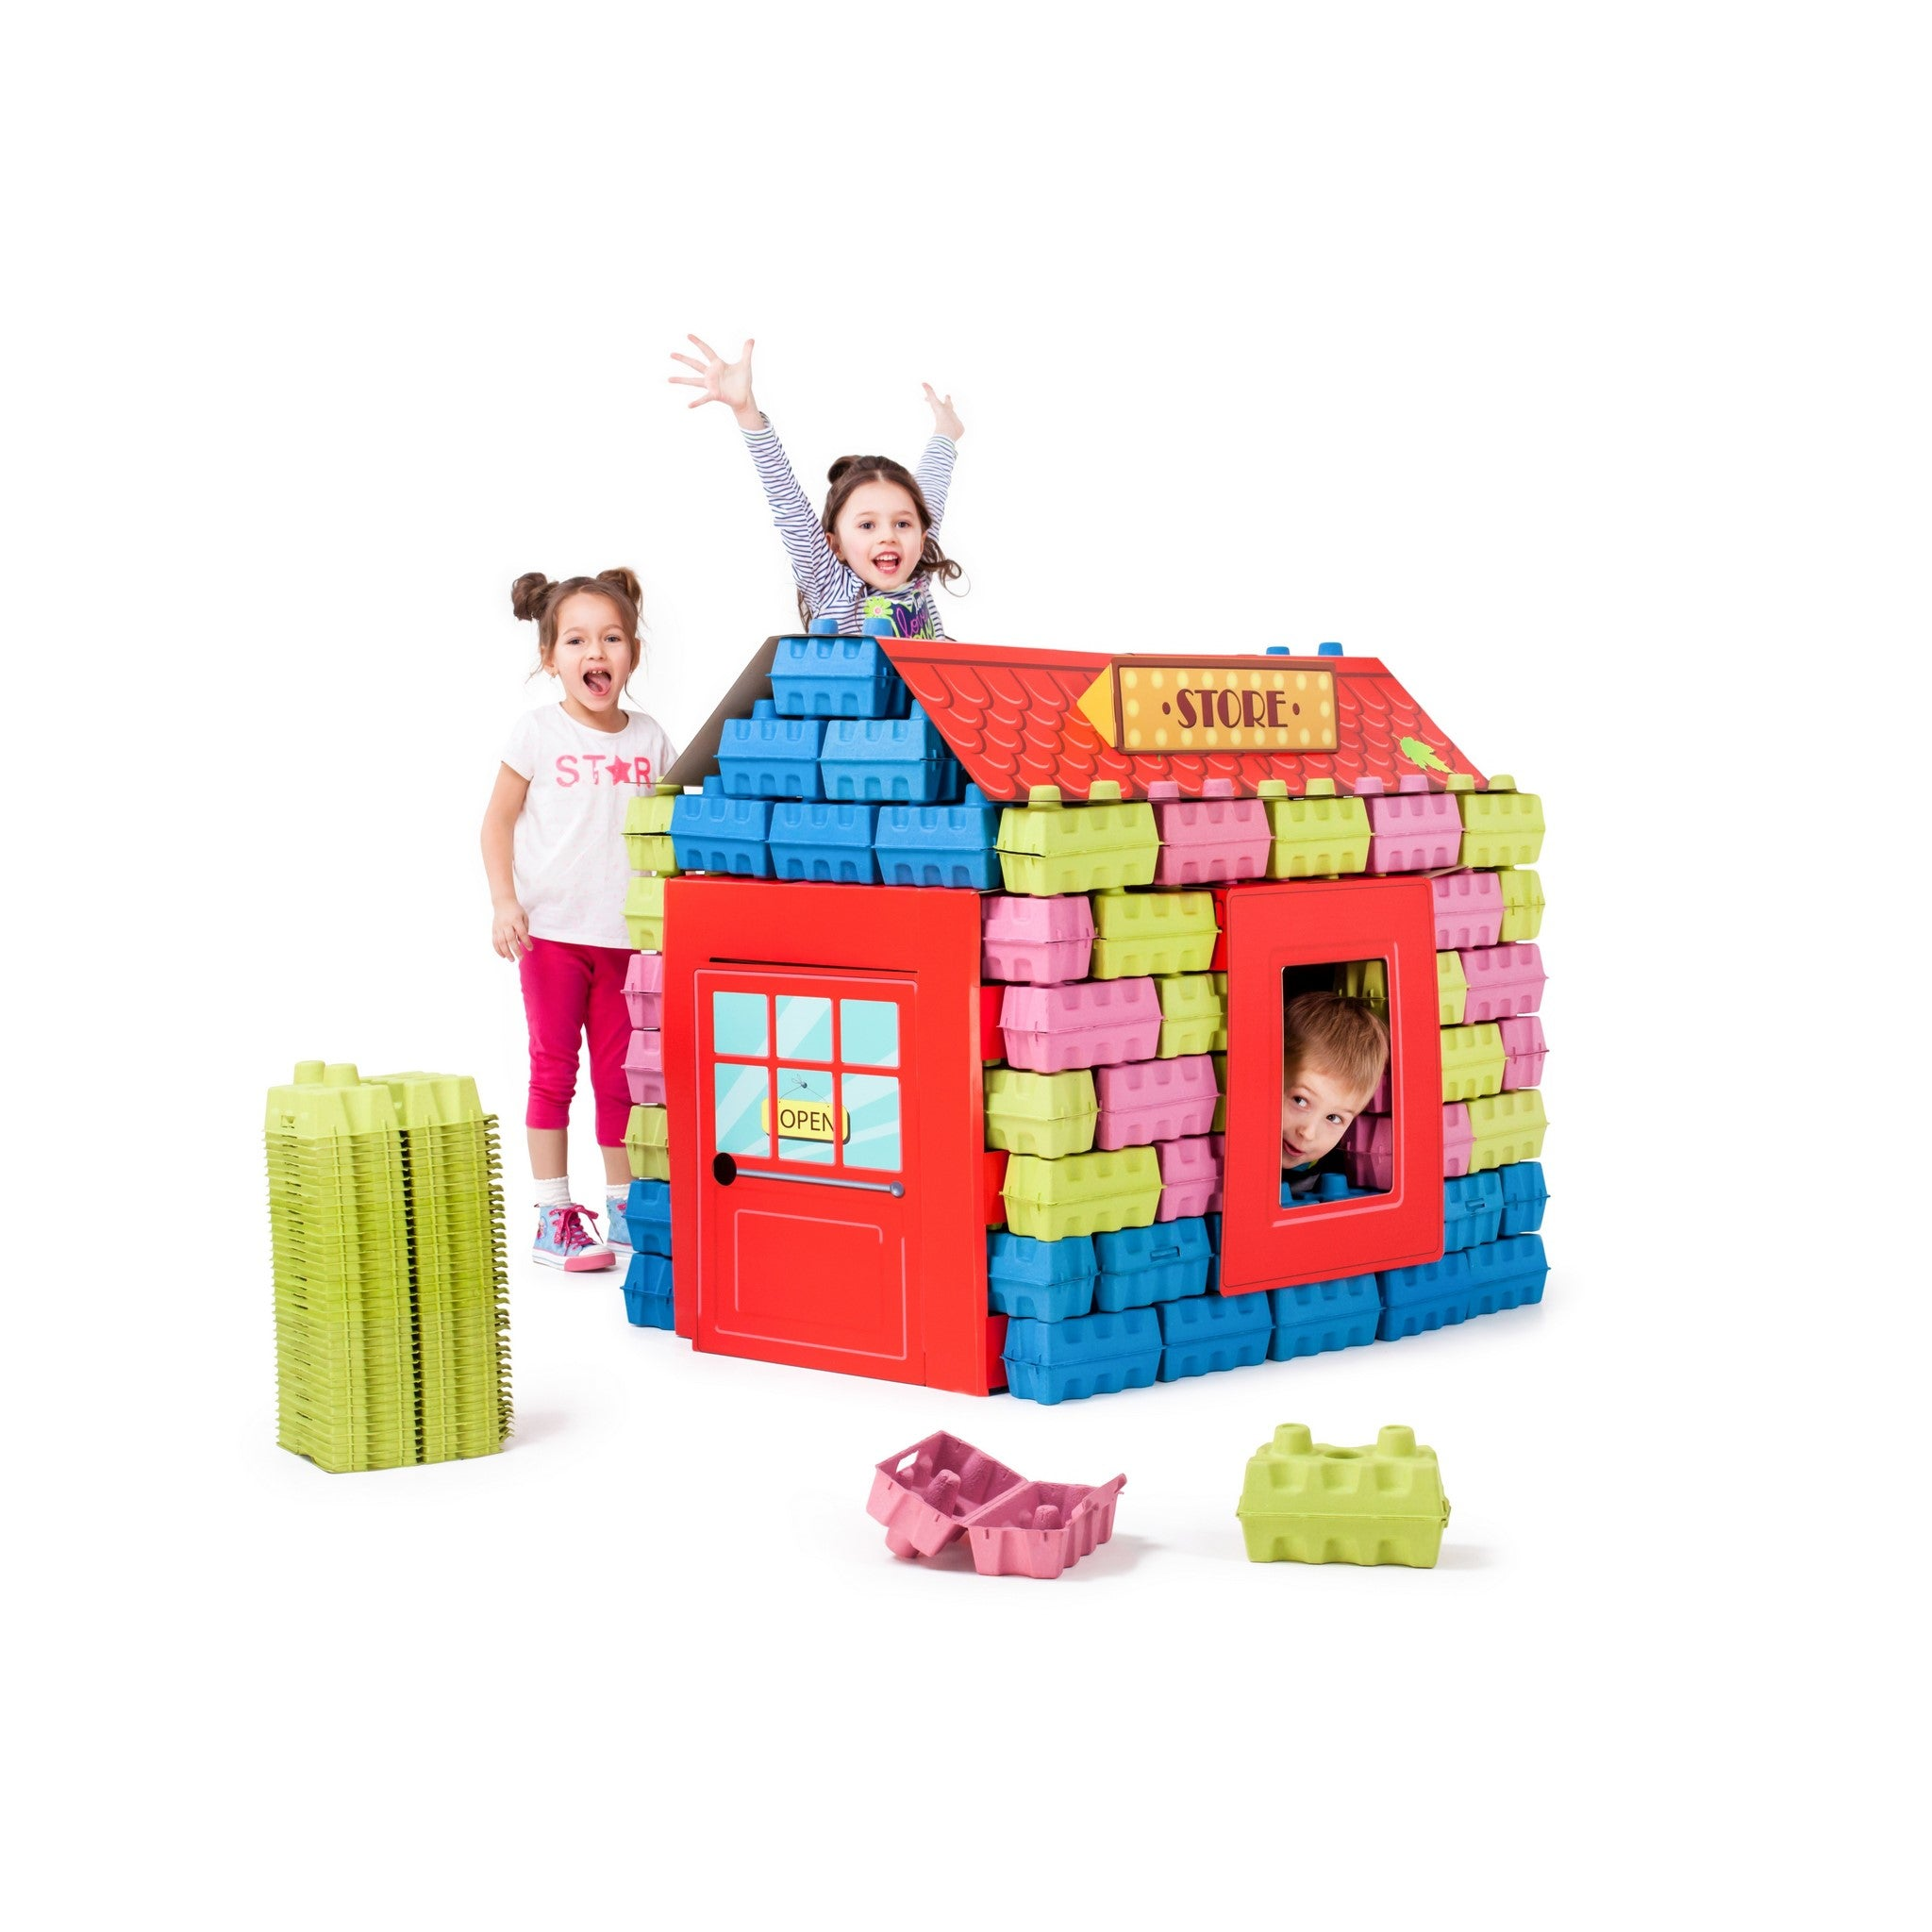 PAGL - 100% safe and eco-friendly cardboard bricks for kids.